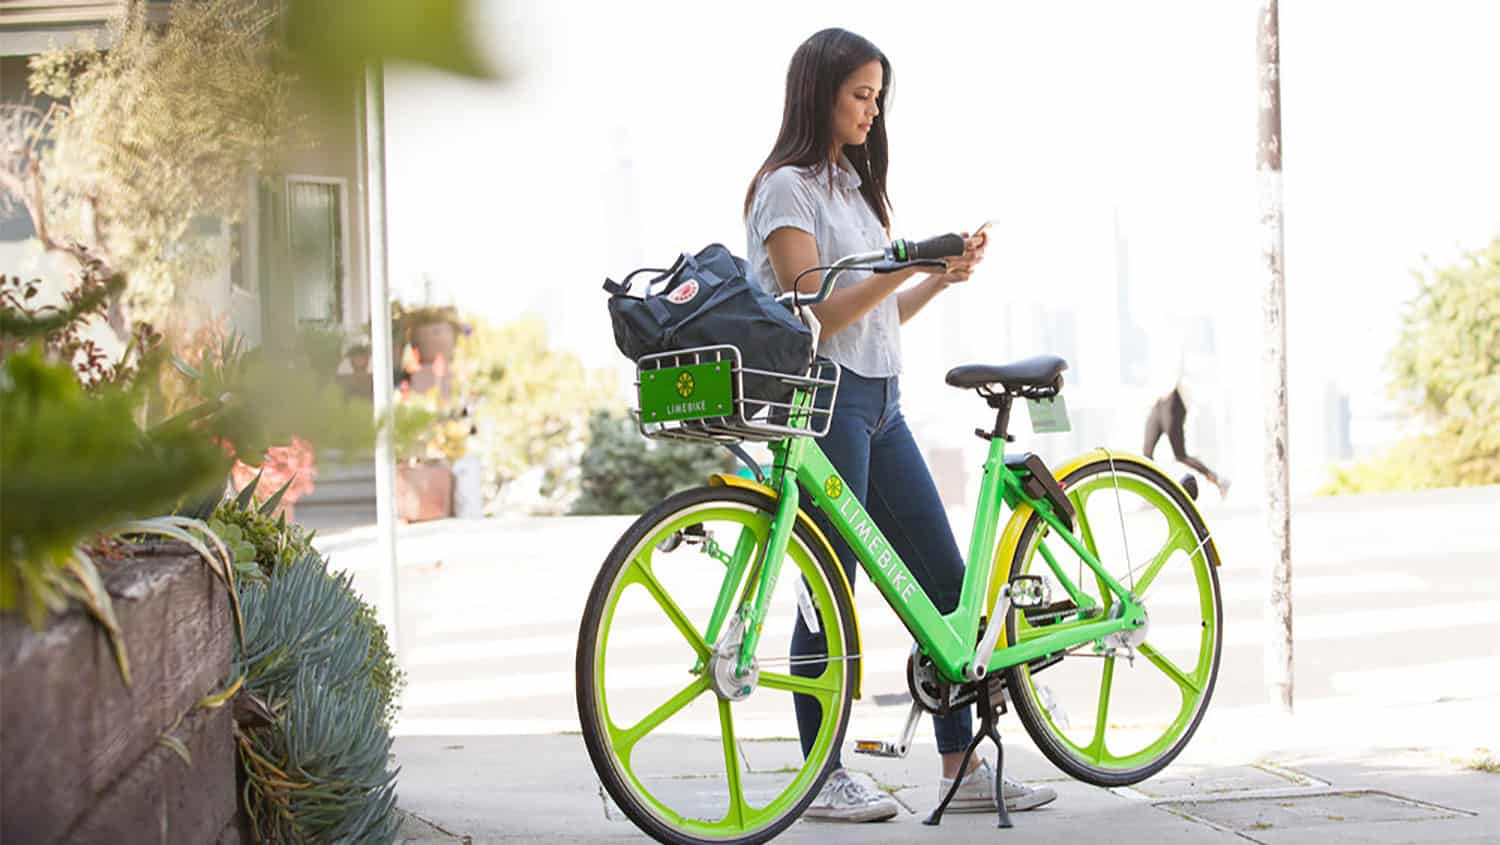 8a76db400ef Lime Bike Chooses Yonkers For First Area Bikeshare | Yonkers Times